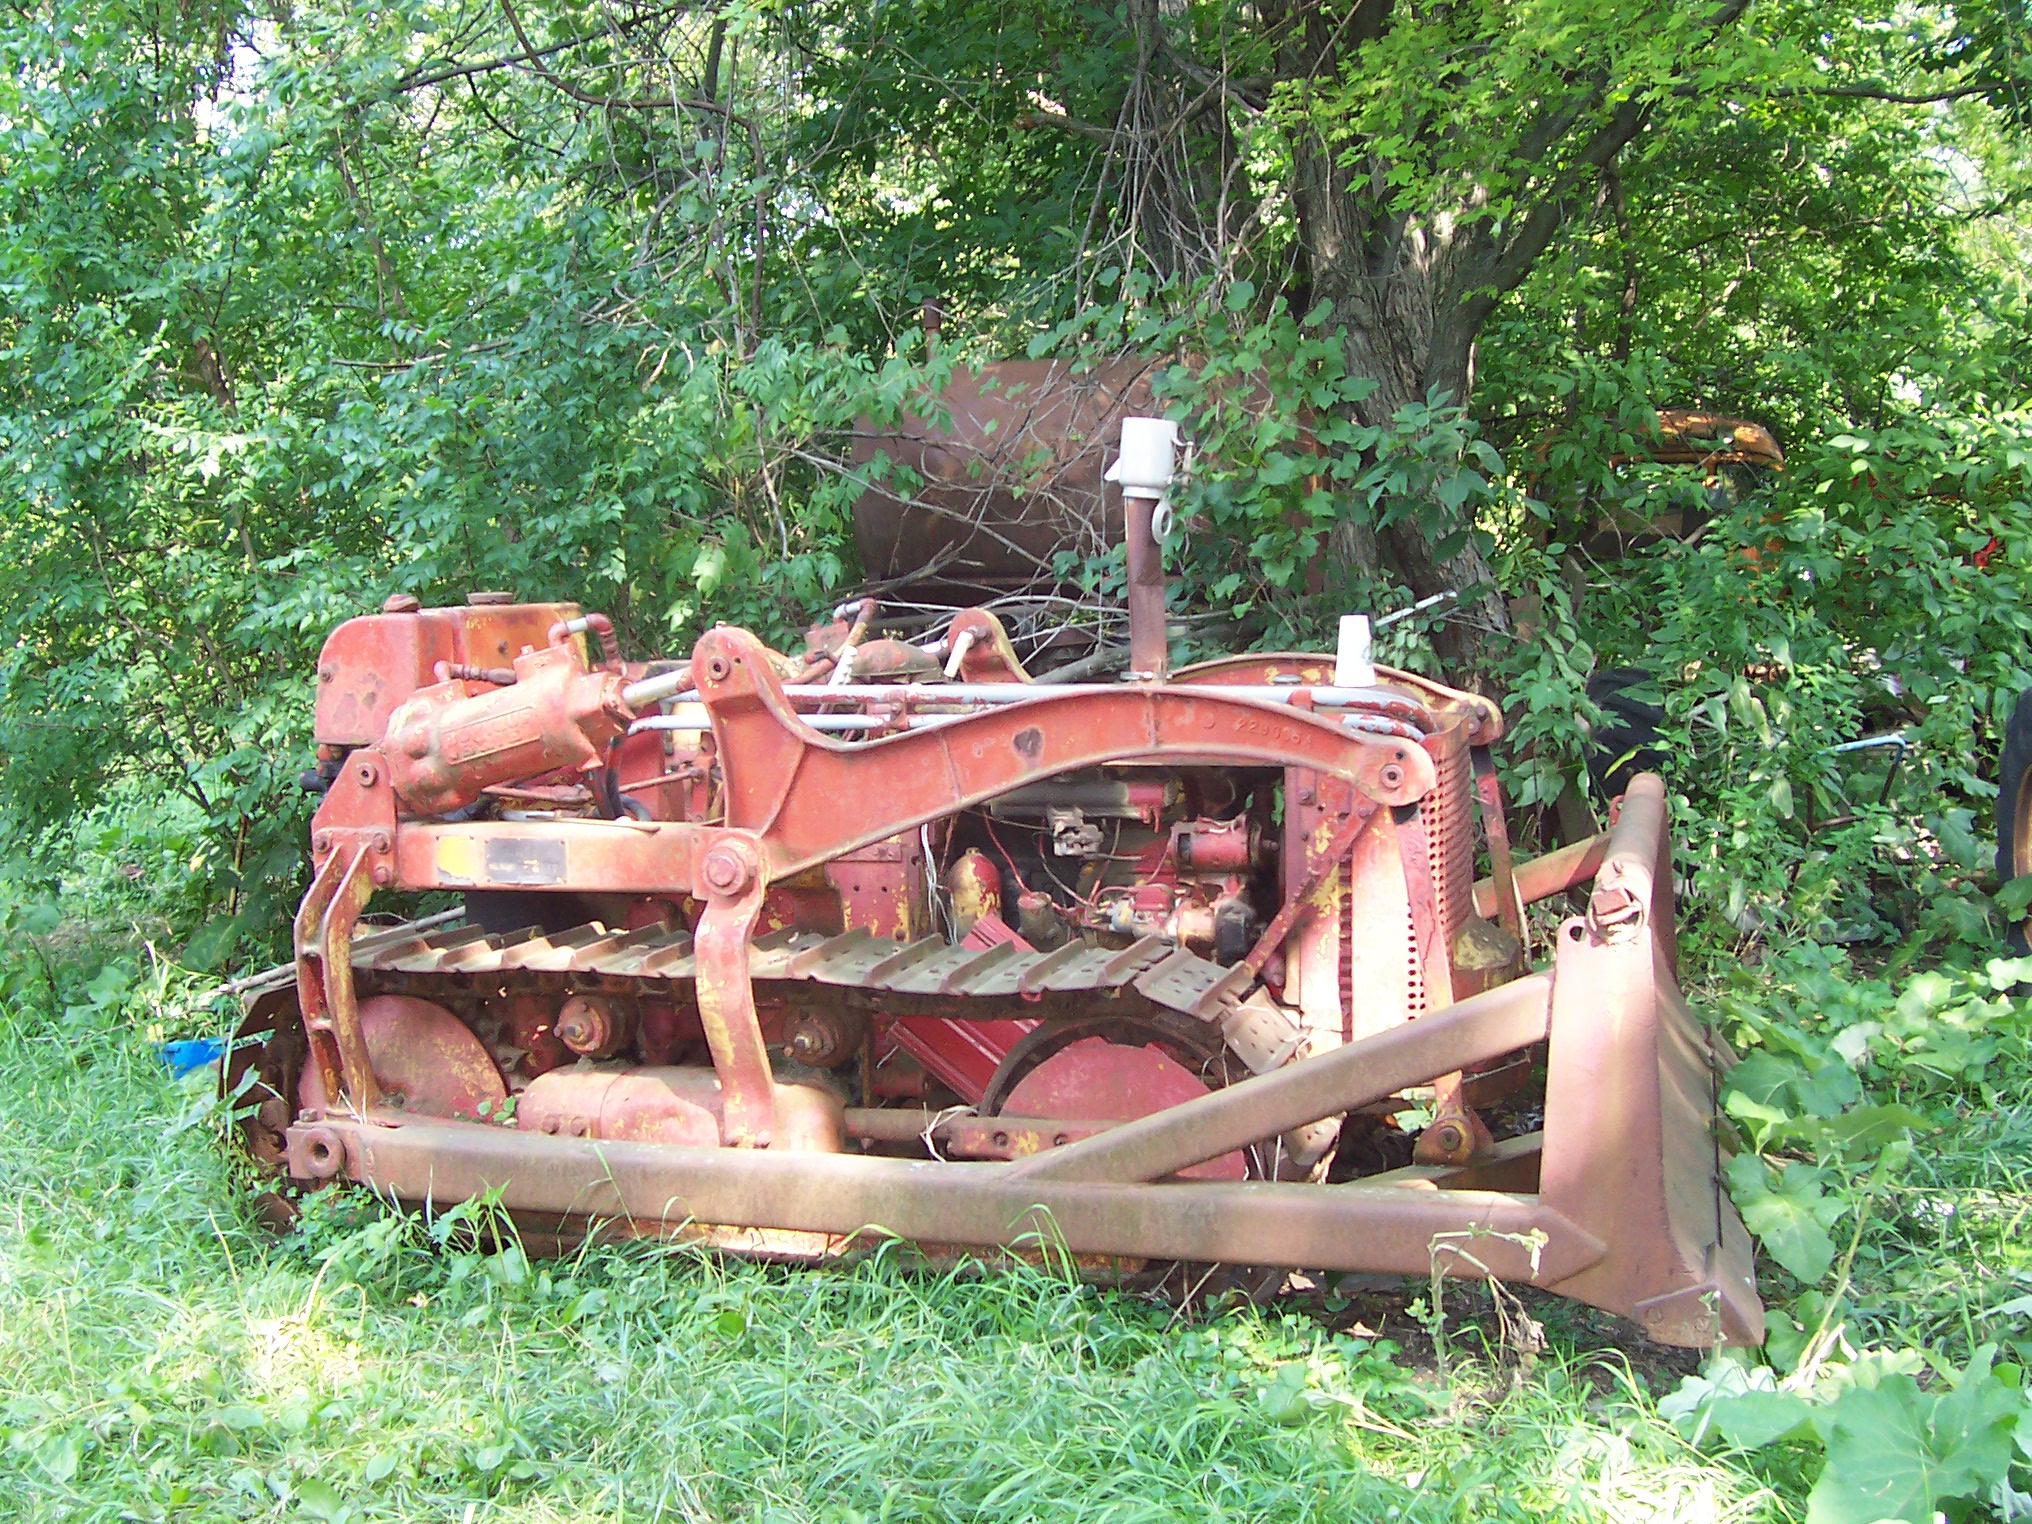 Mccormick Ih International Harvester Farmall M Pedal Tractor Rare Car